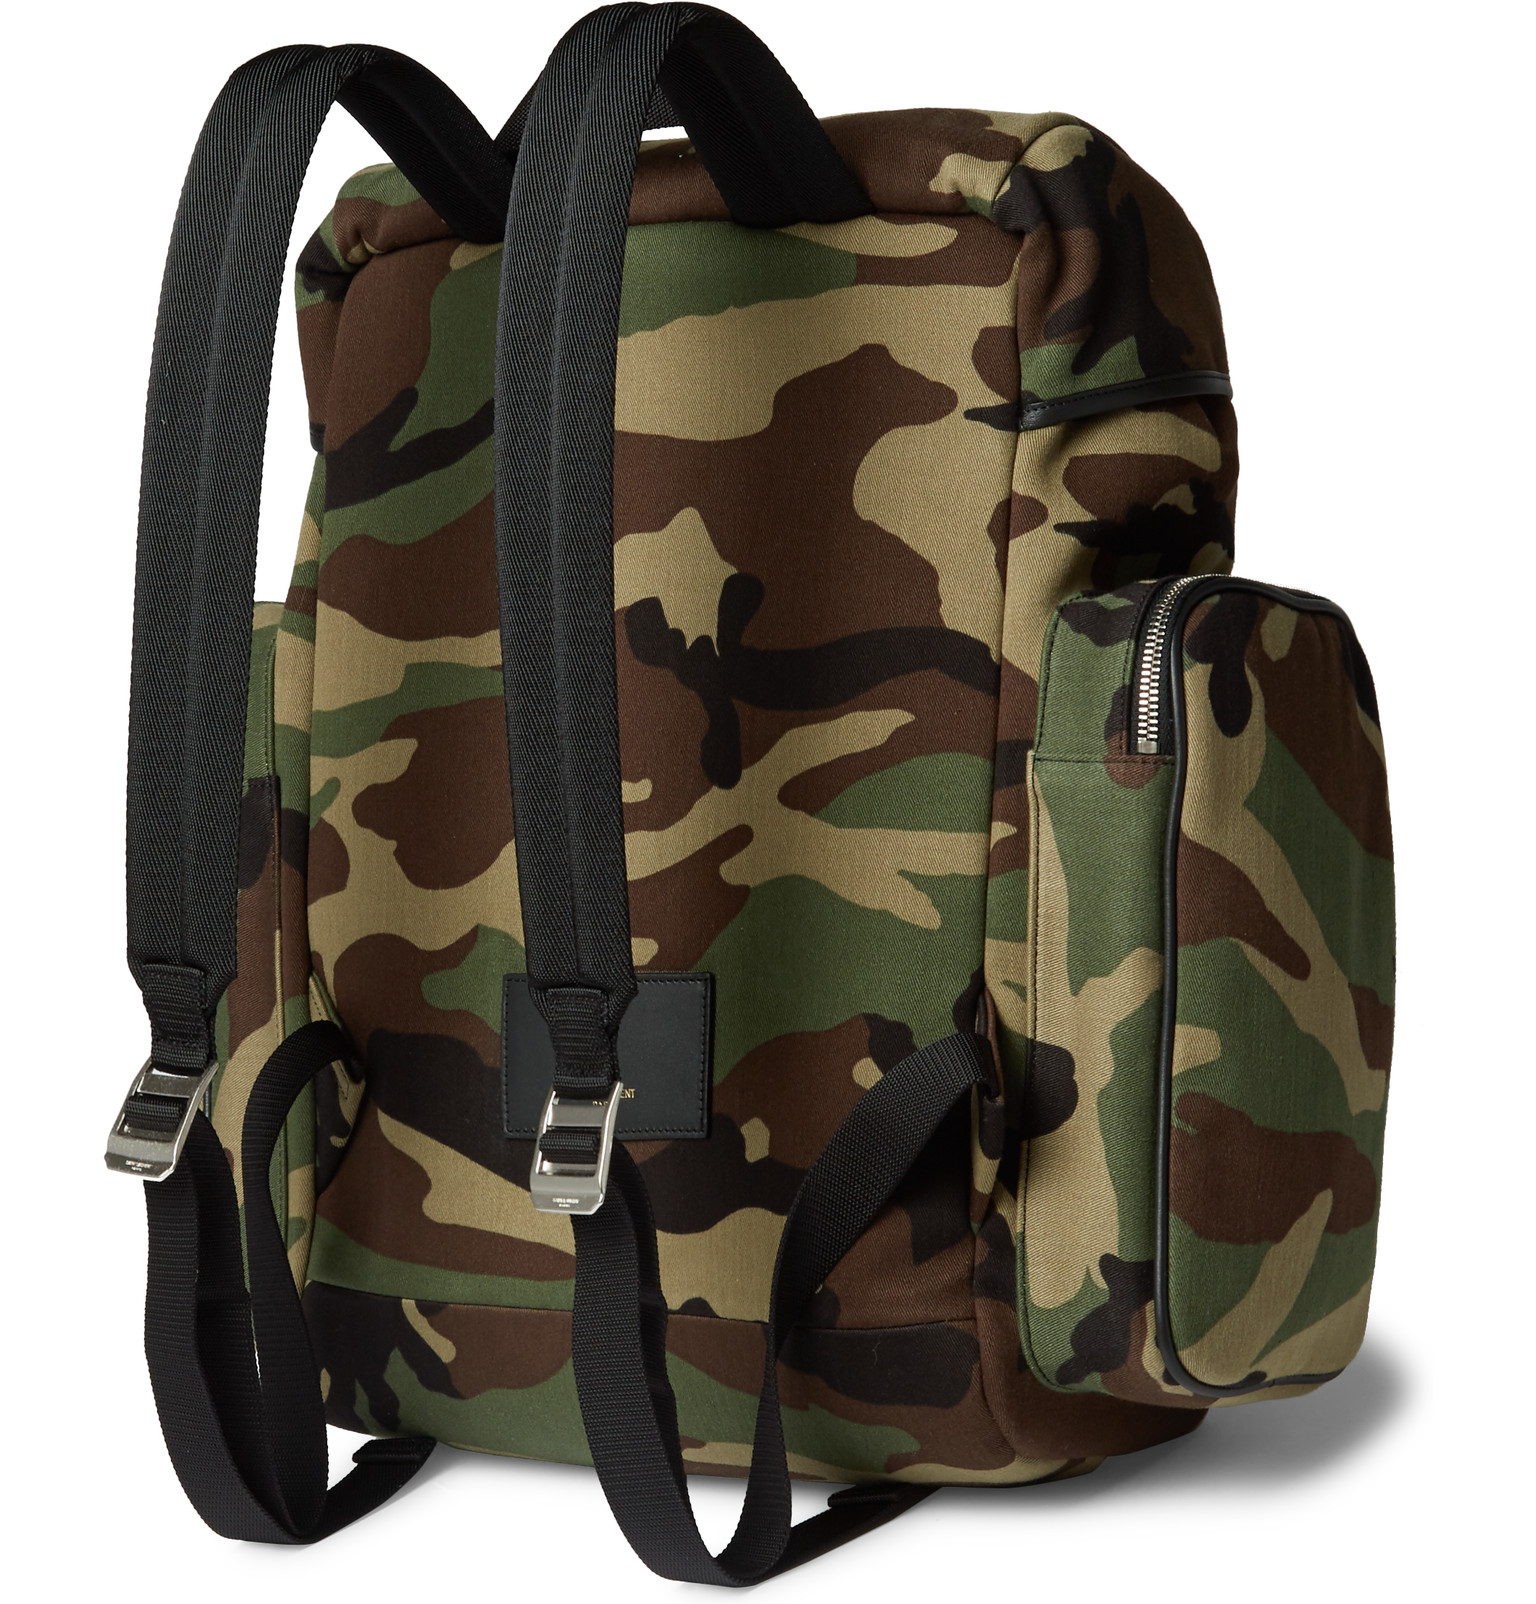 70bf9eb872 Saint Laurent Leather-trimmed Camouflage-print Canvas Backpack in ...